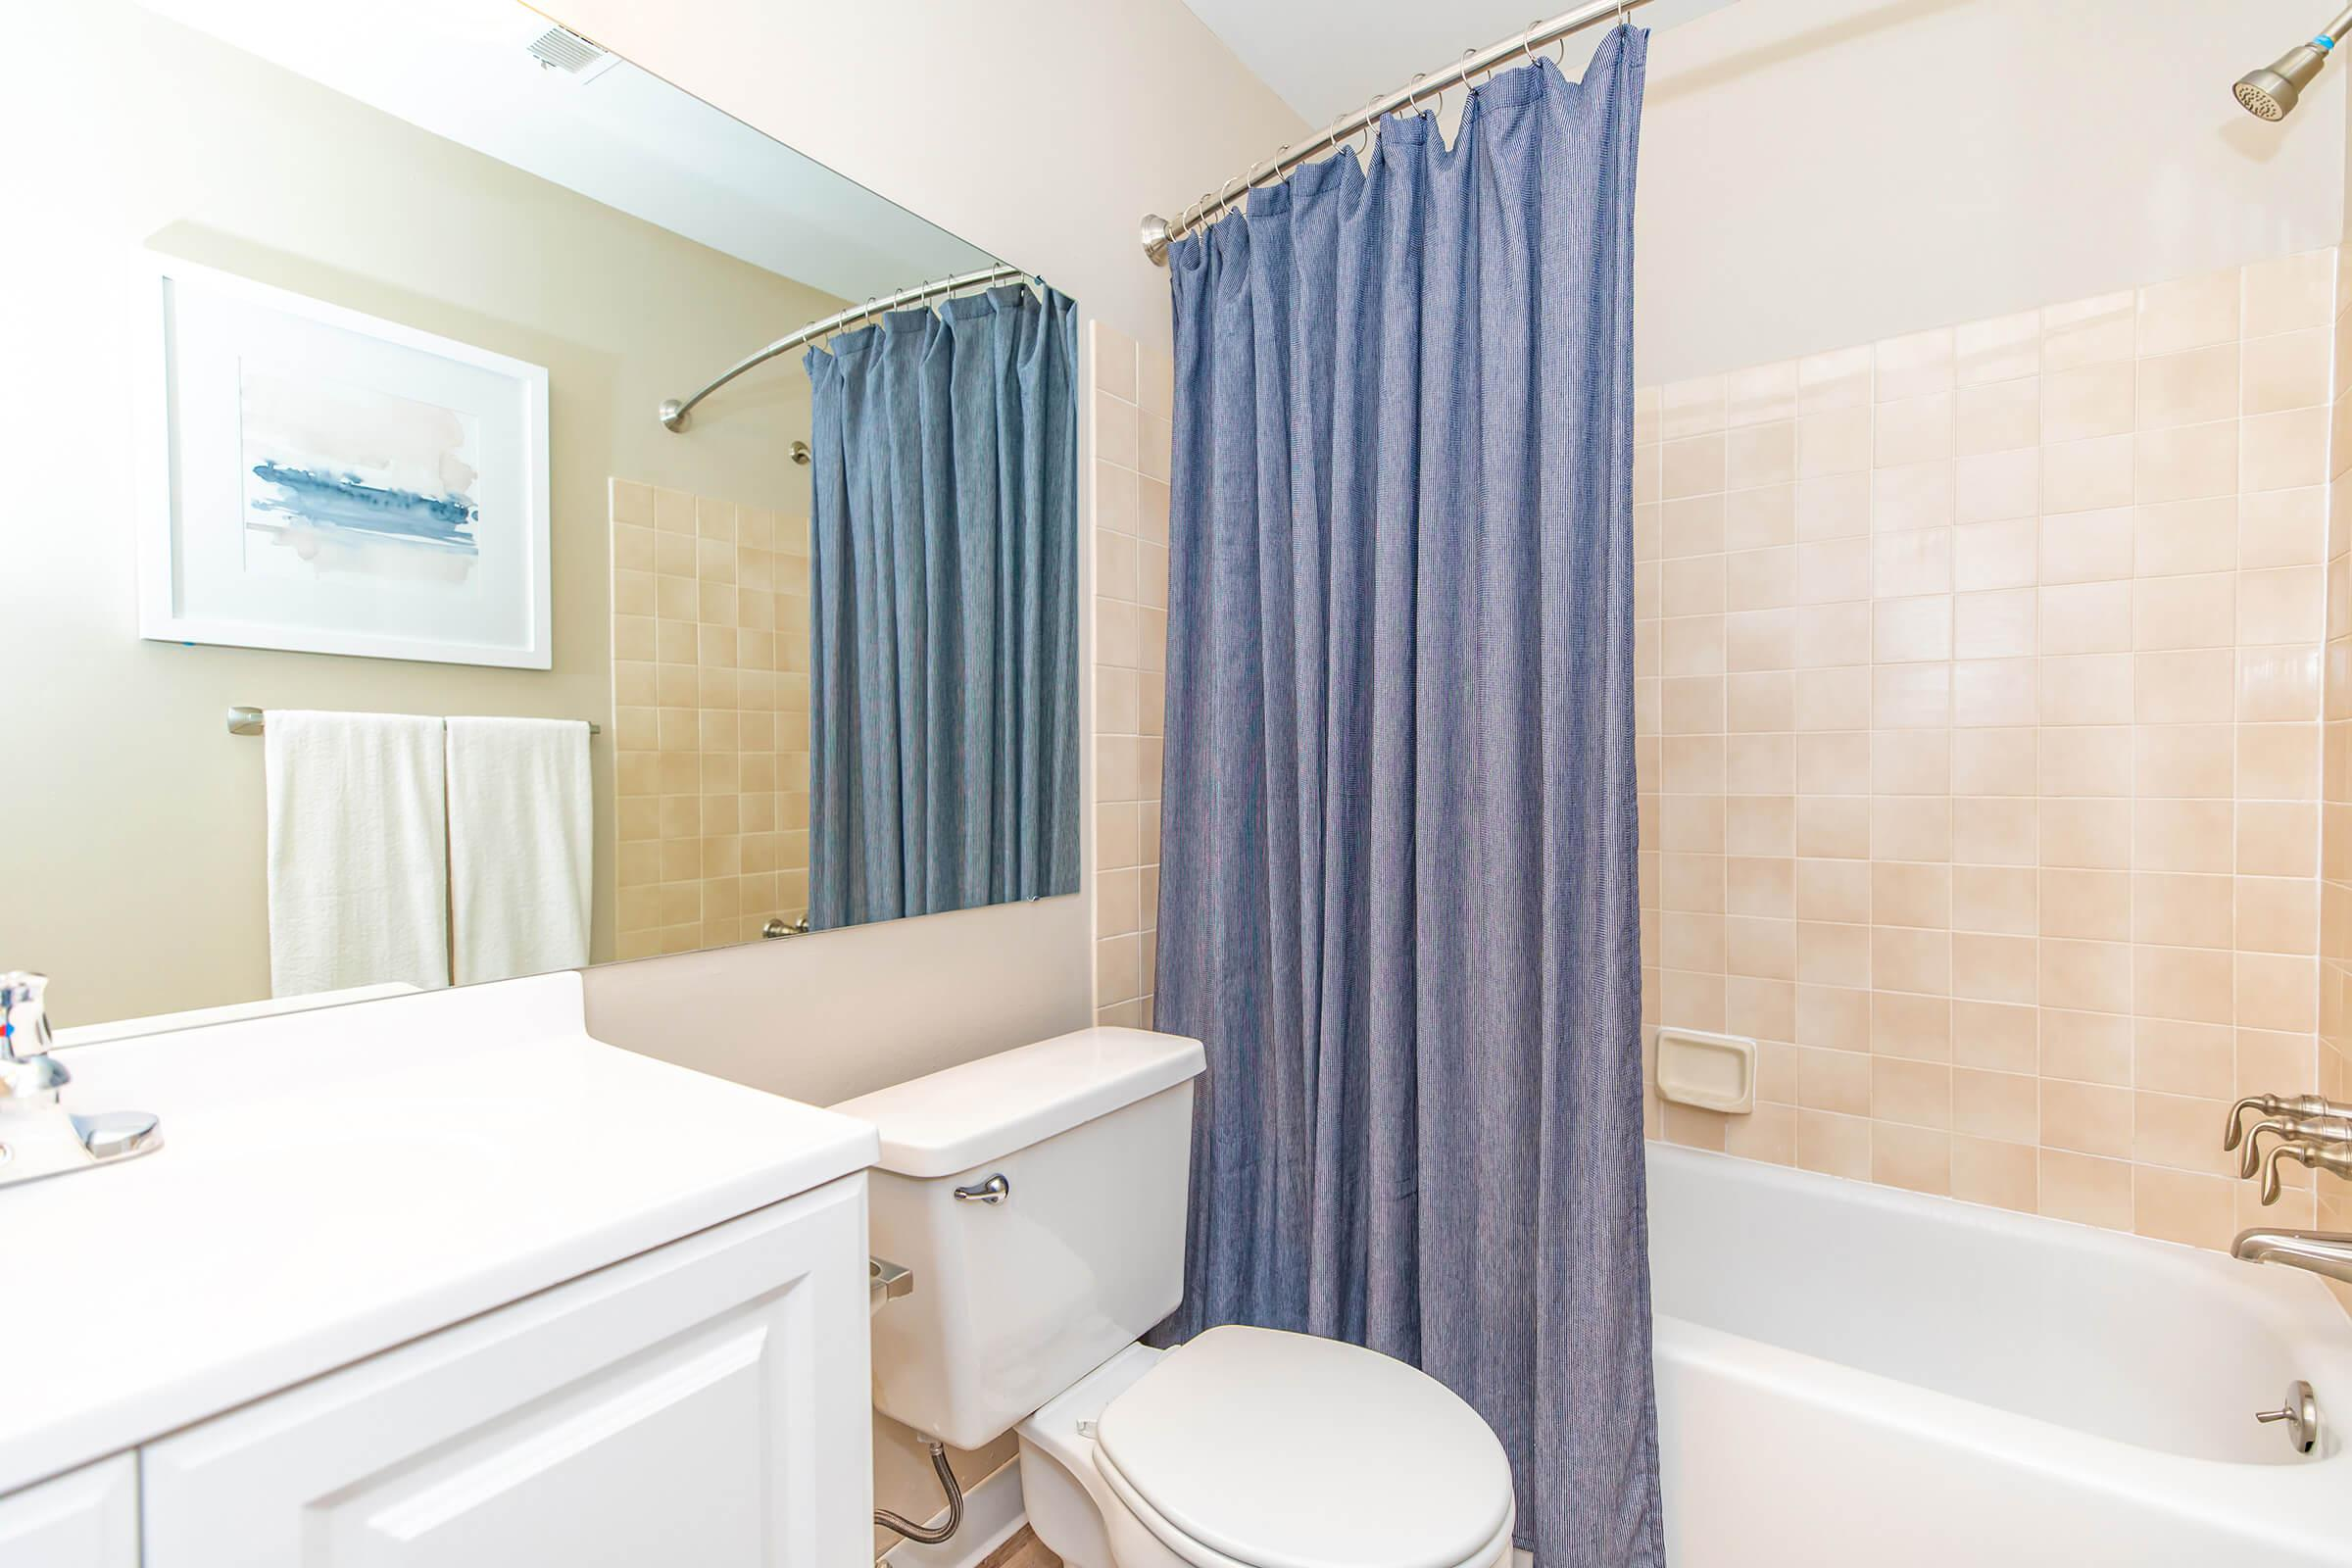 a room with a sink tub and shower curtain